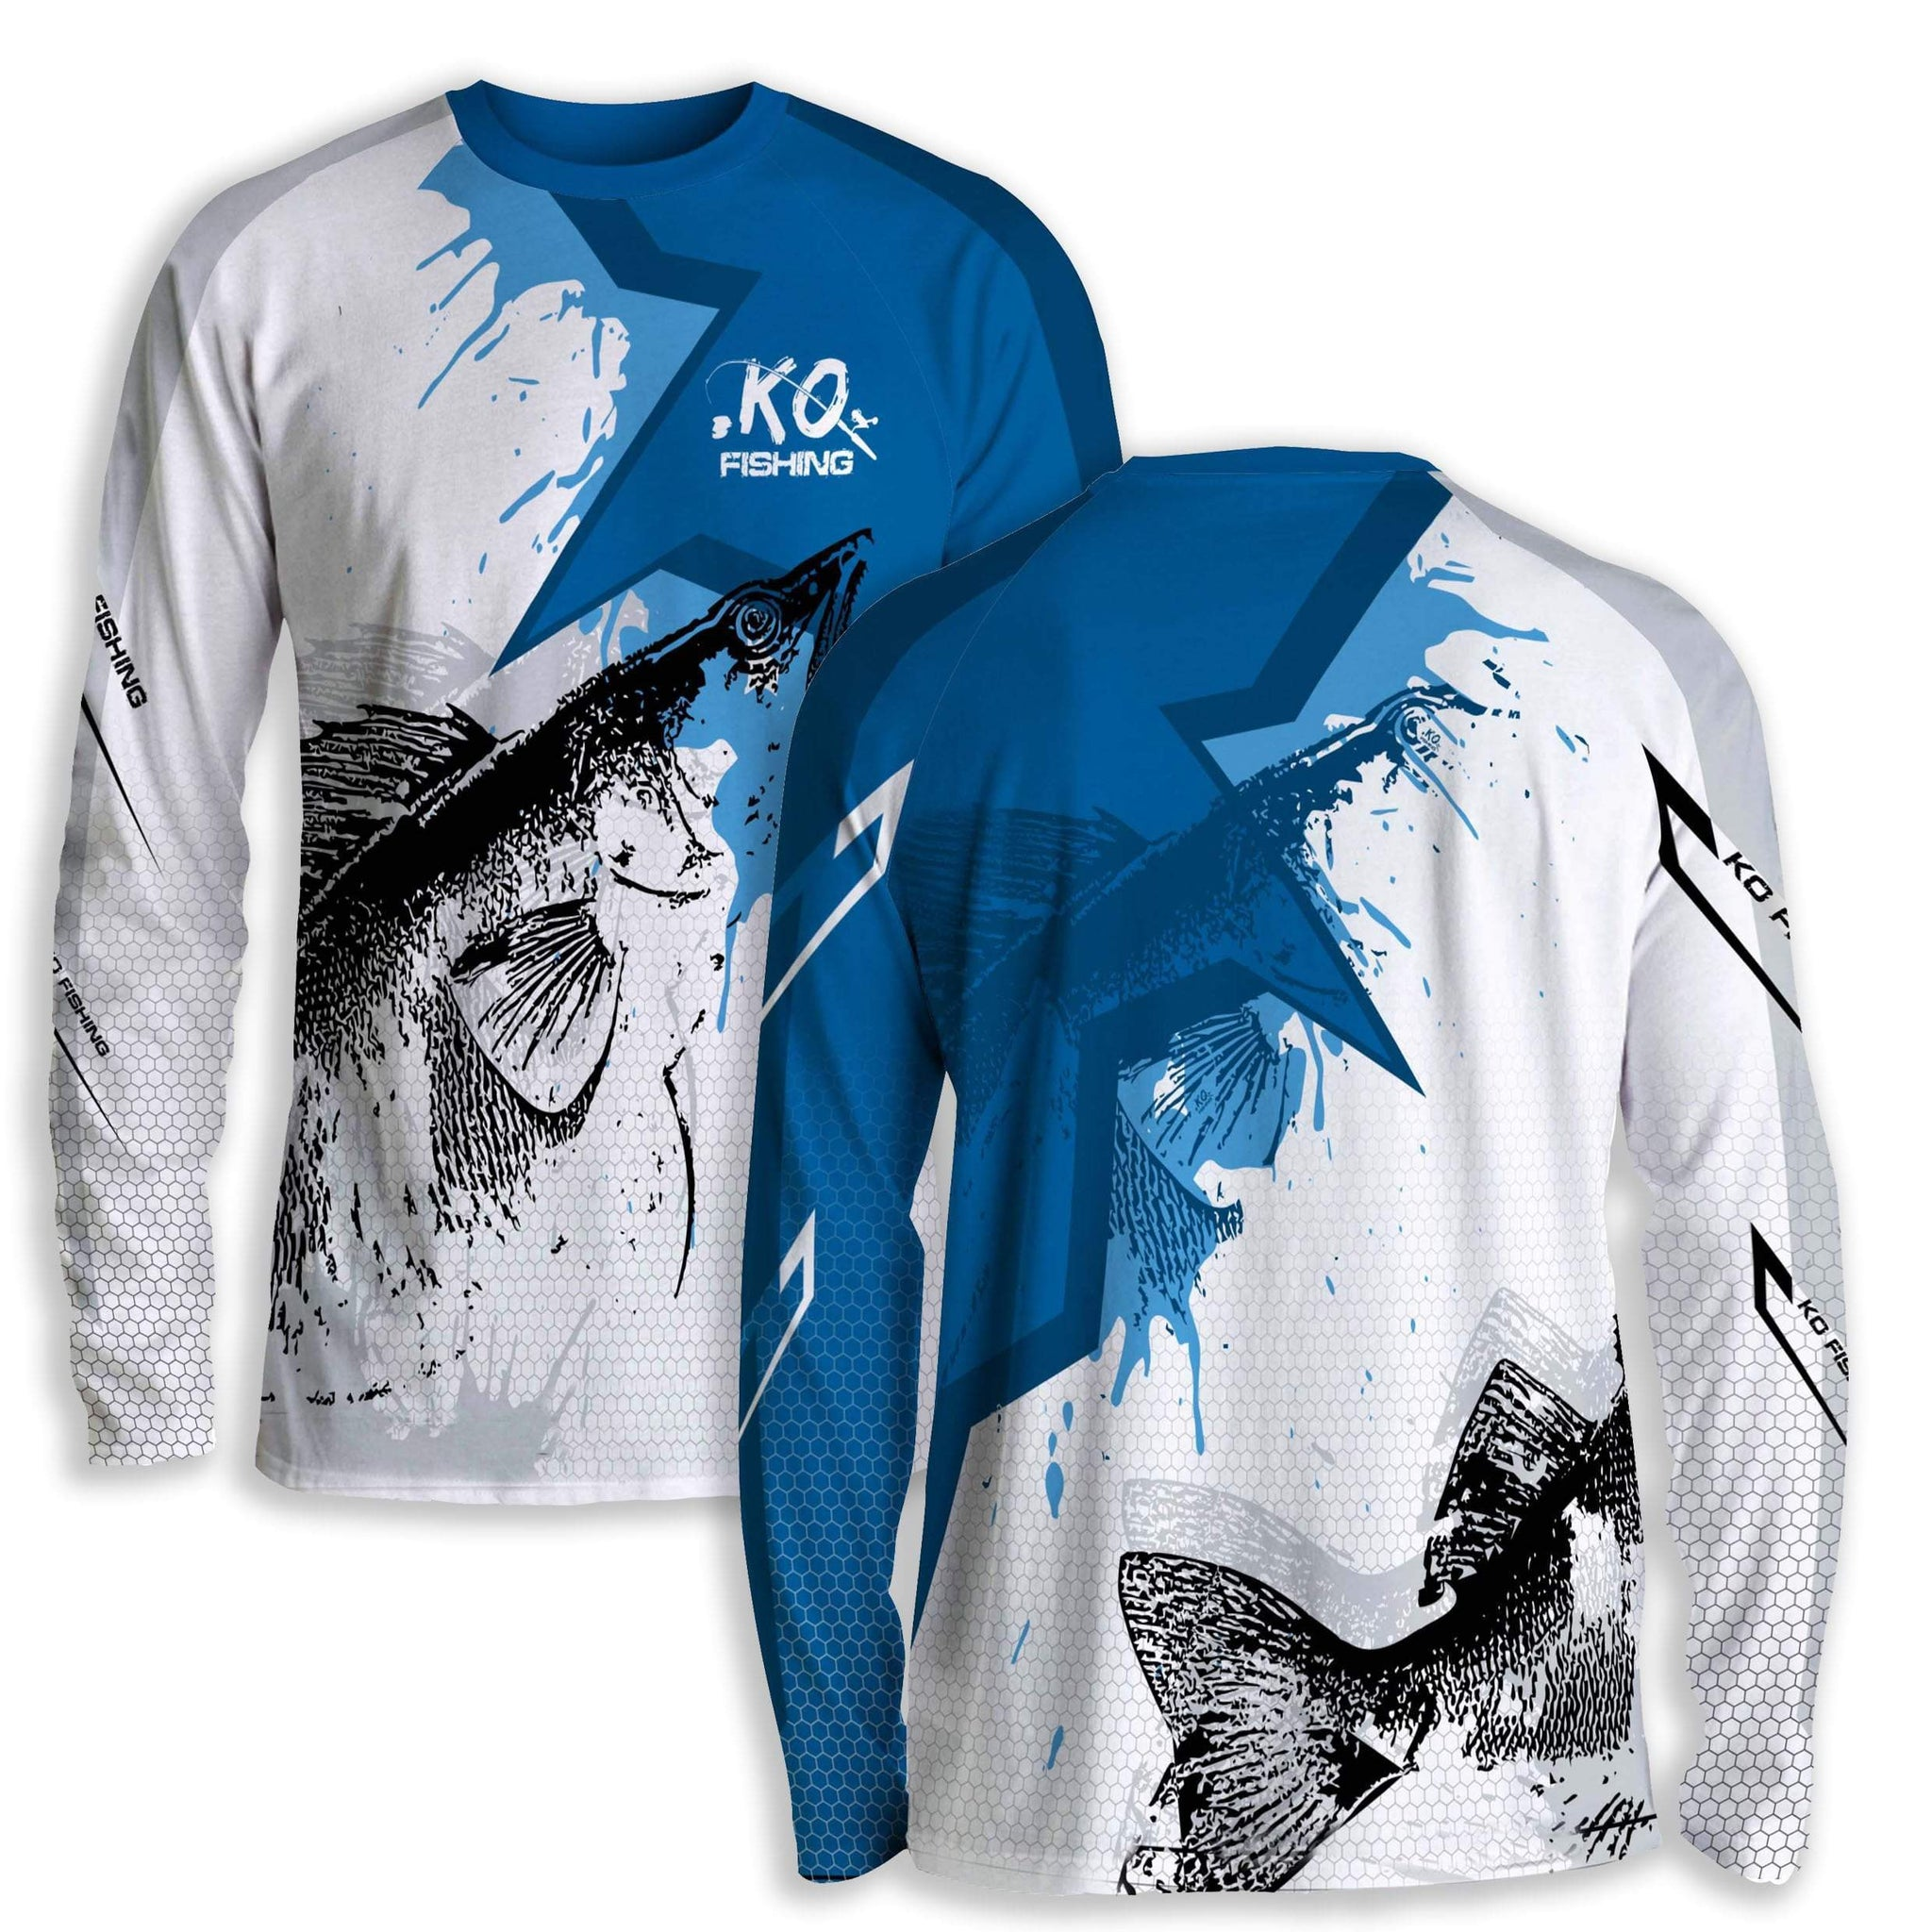 Fishing clothes koss outdoors for Fish scale shirt